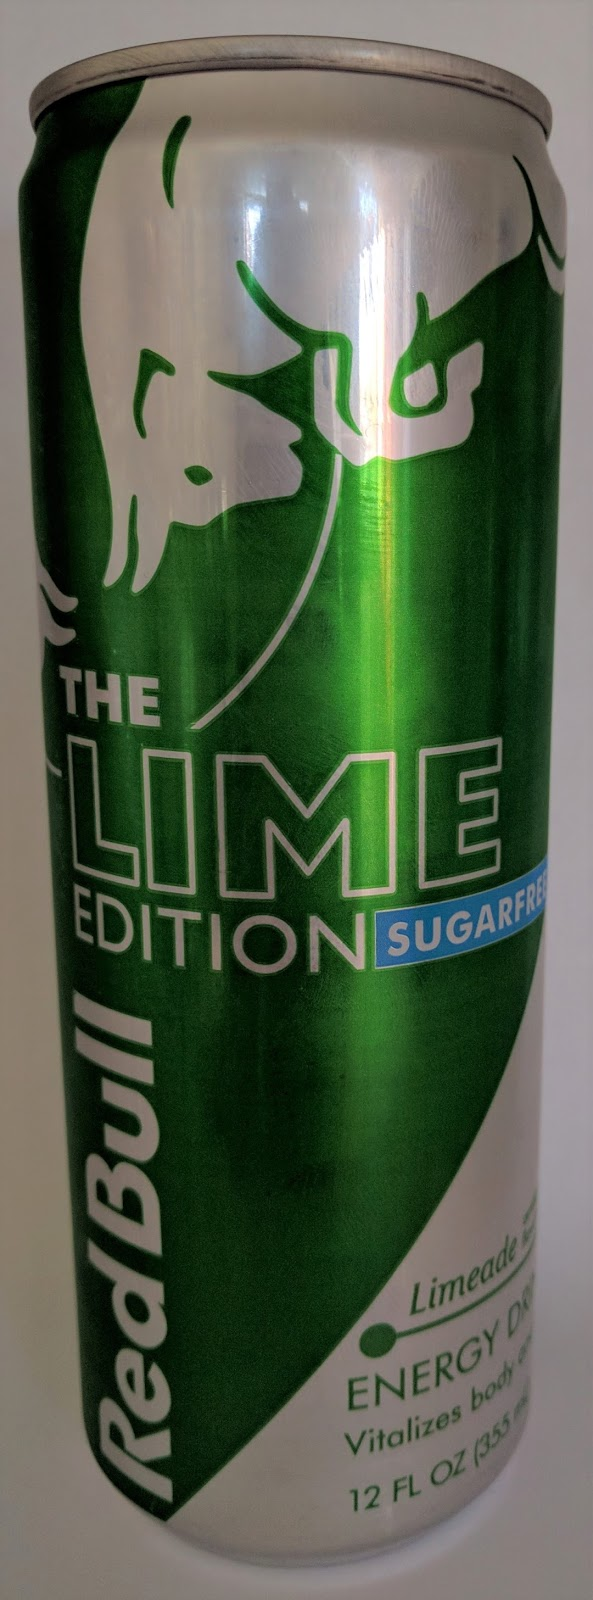 caffeine king red bull the lime edition sugar free energy drink review. Black Bedroom Furniture Sets. Home Design Ideas